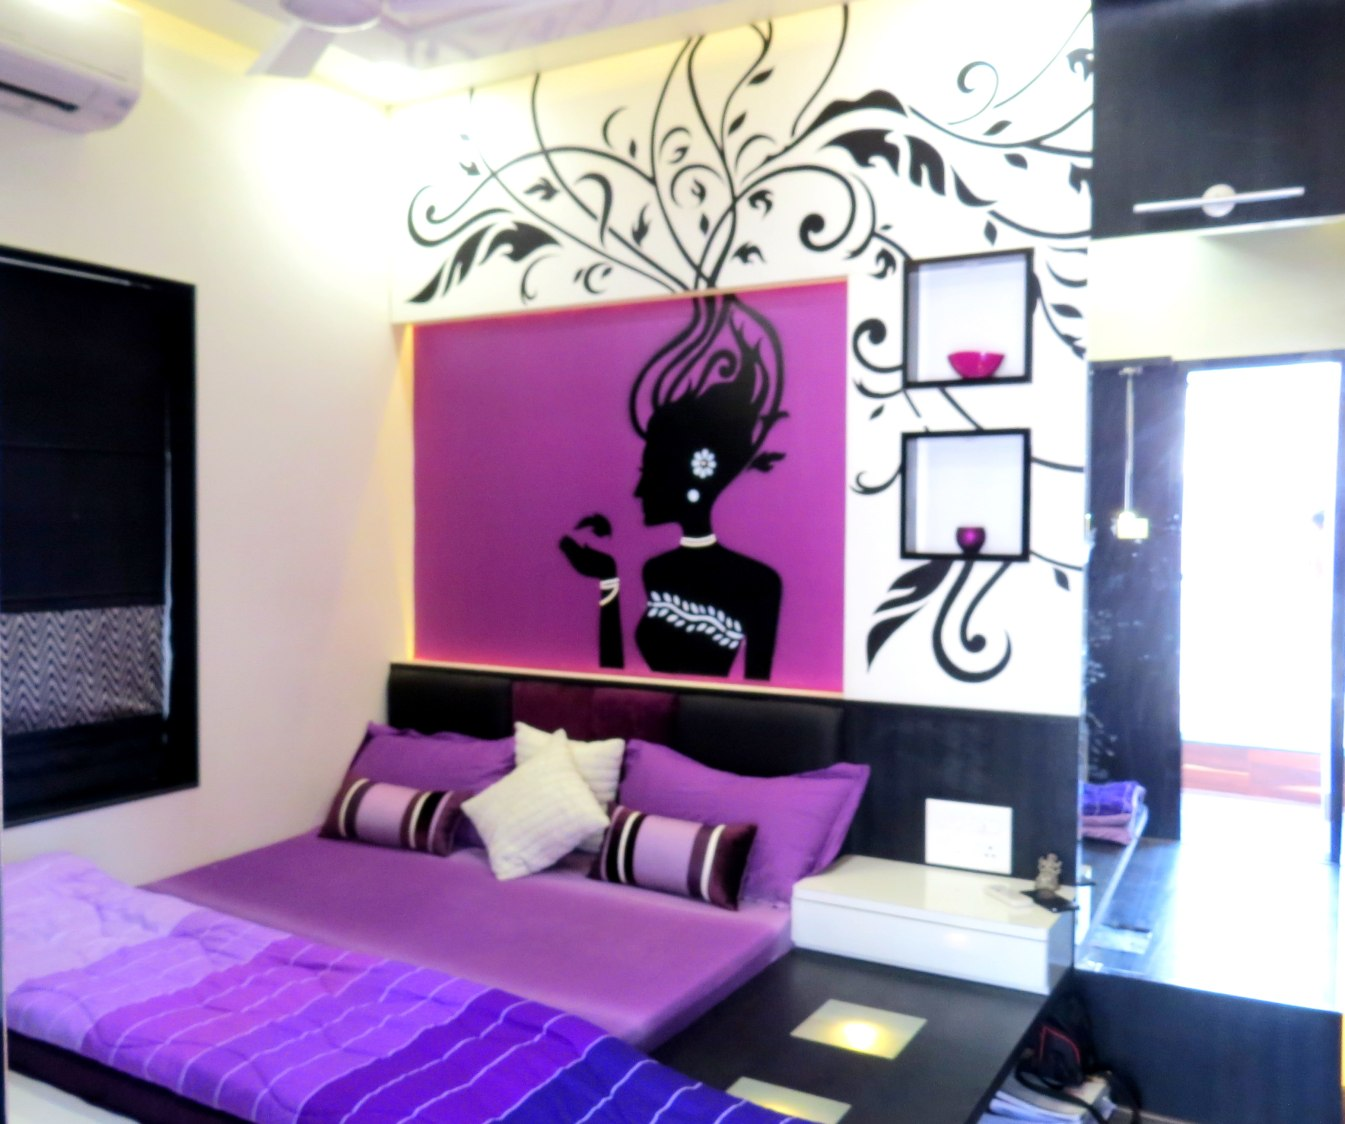 Creativity at its best by Harshila Shreeram Talasila Modern | Interior Design Photos & Ideas